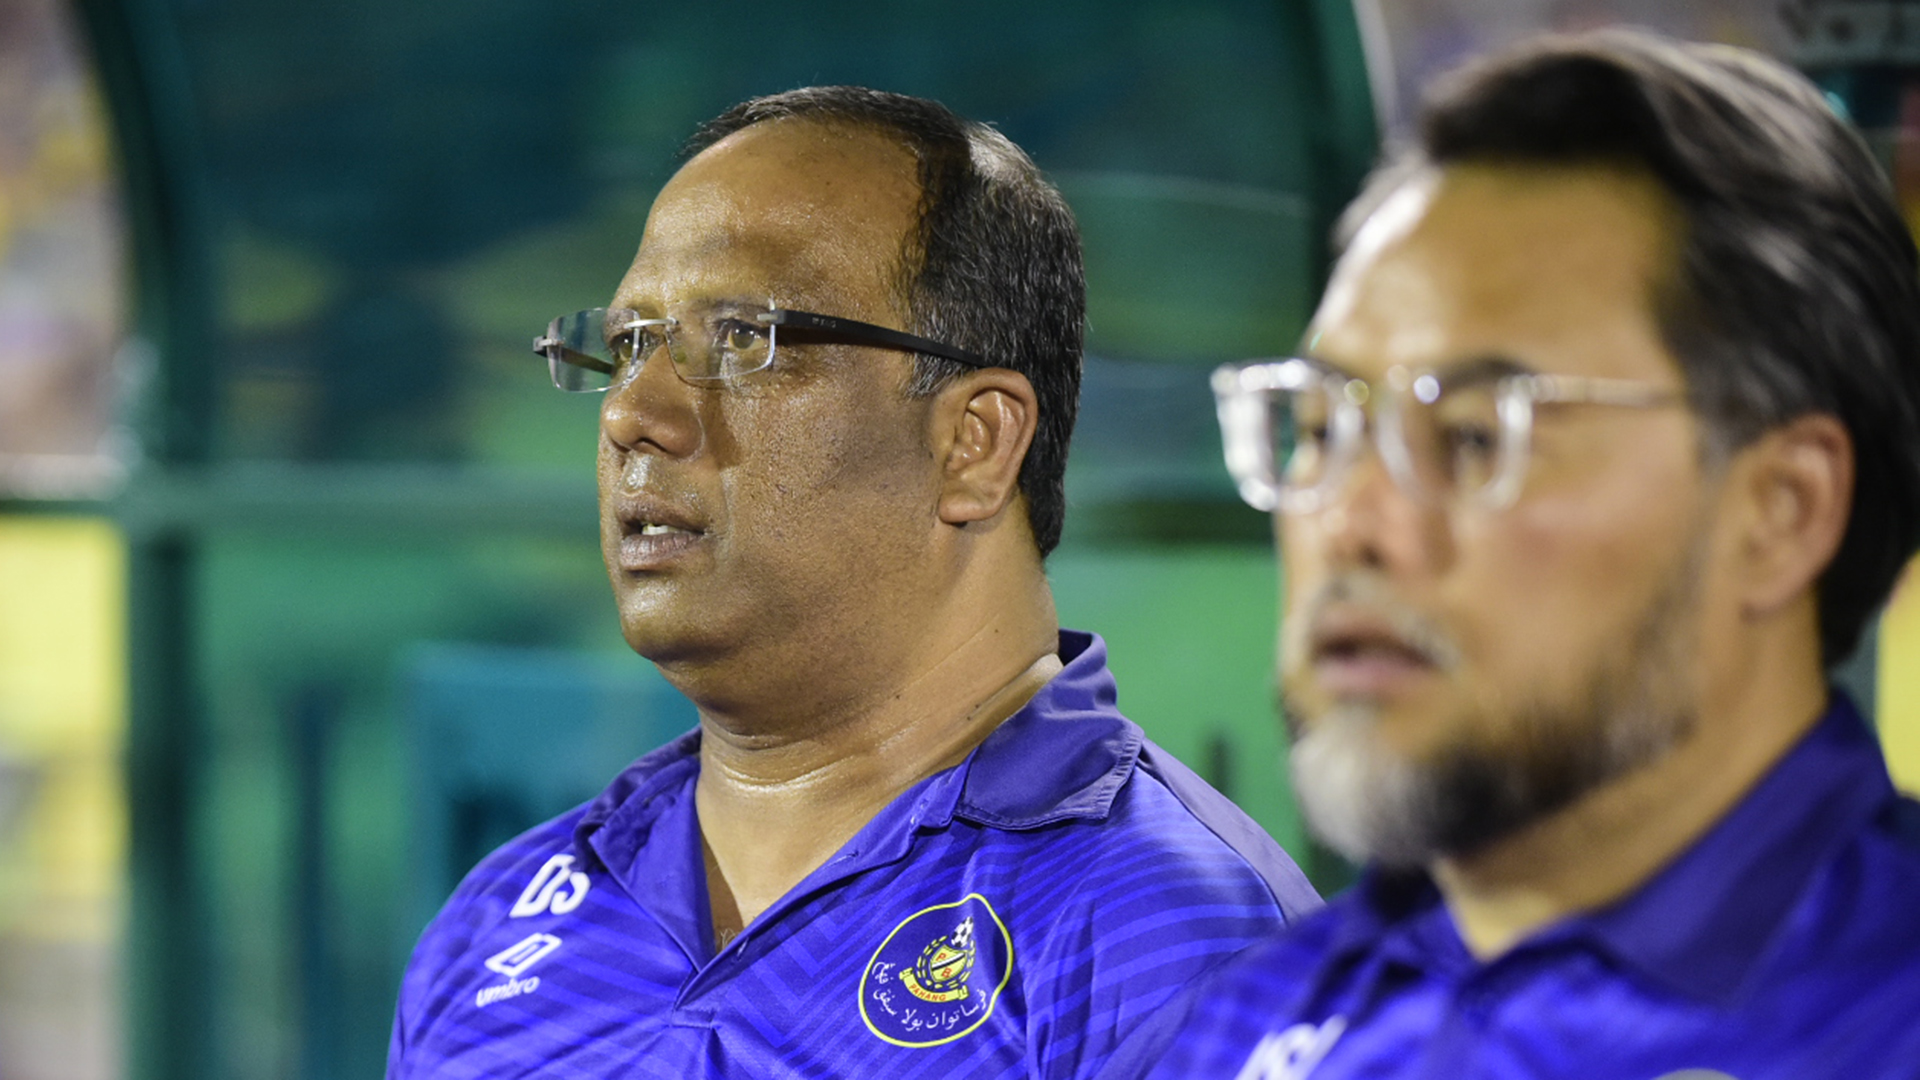 Pahang keeping cards close to their chest in terms of import players